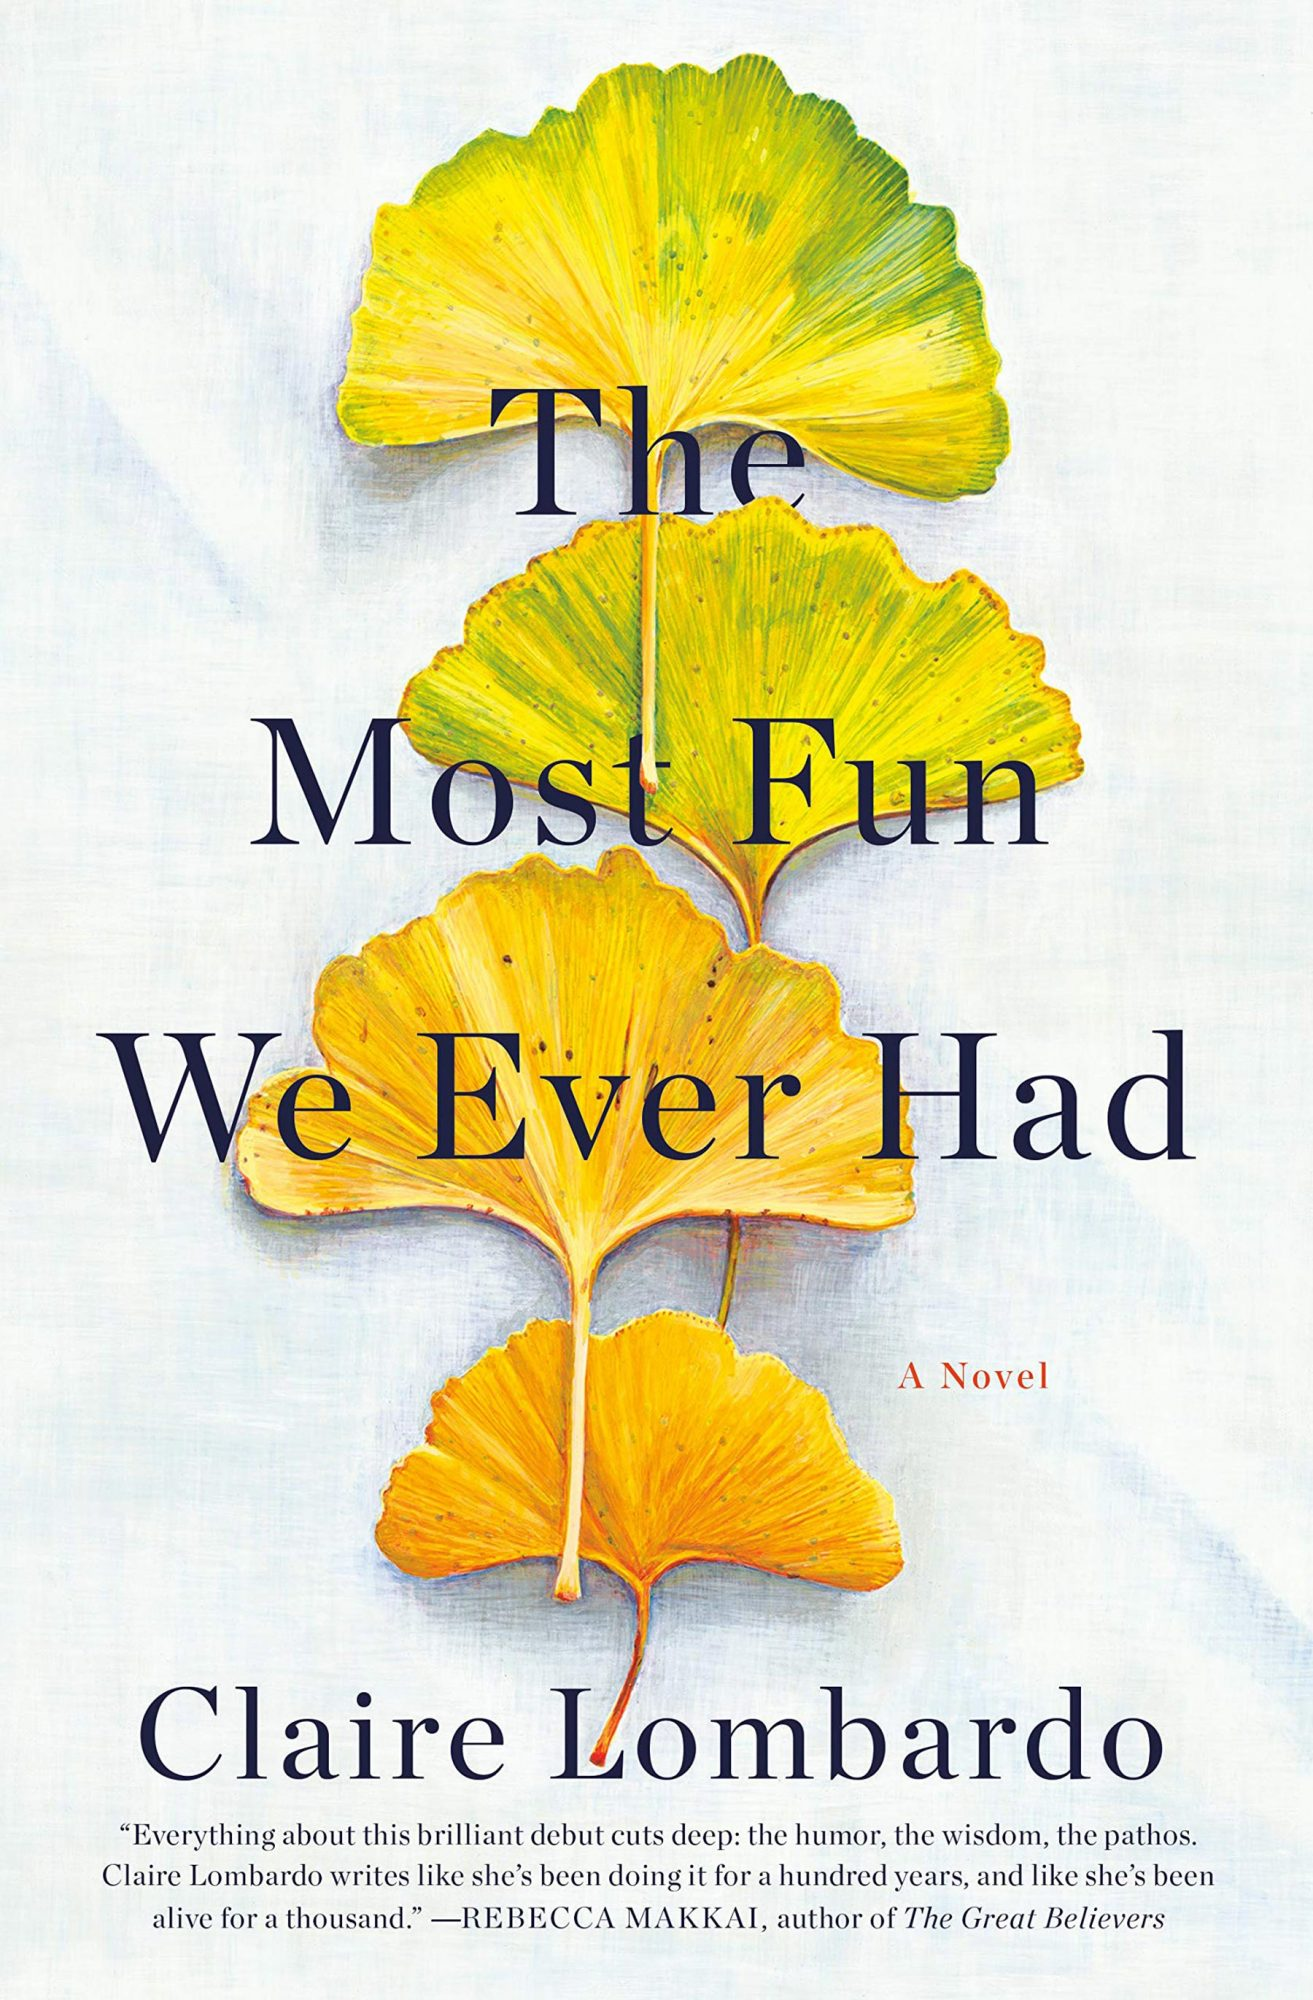 The Most Fun We Ever Had by Claire LombardoPublisher: Doubleday